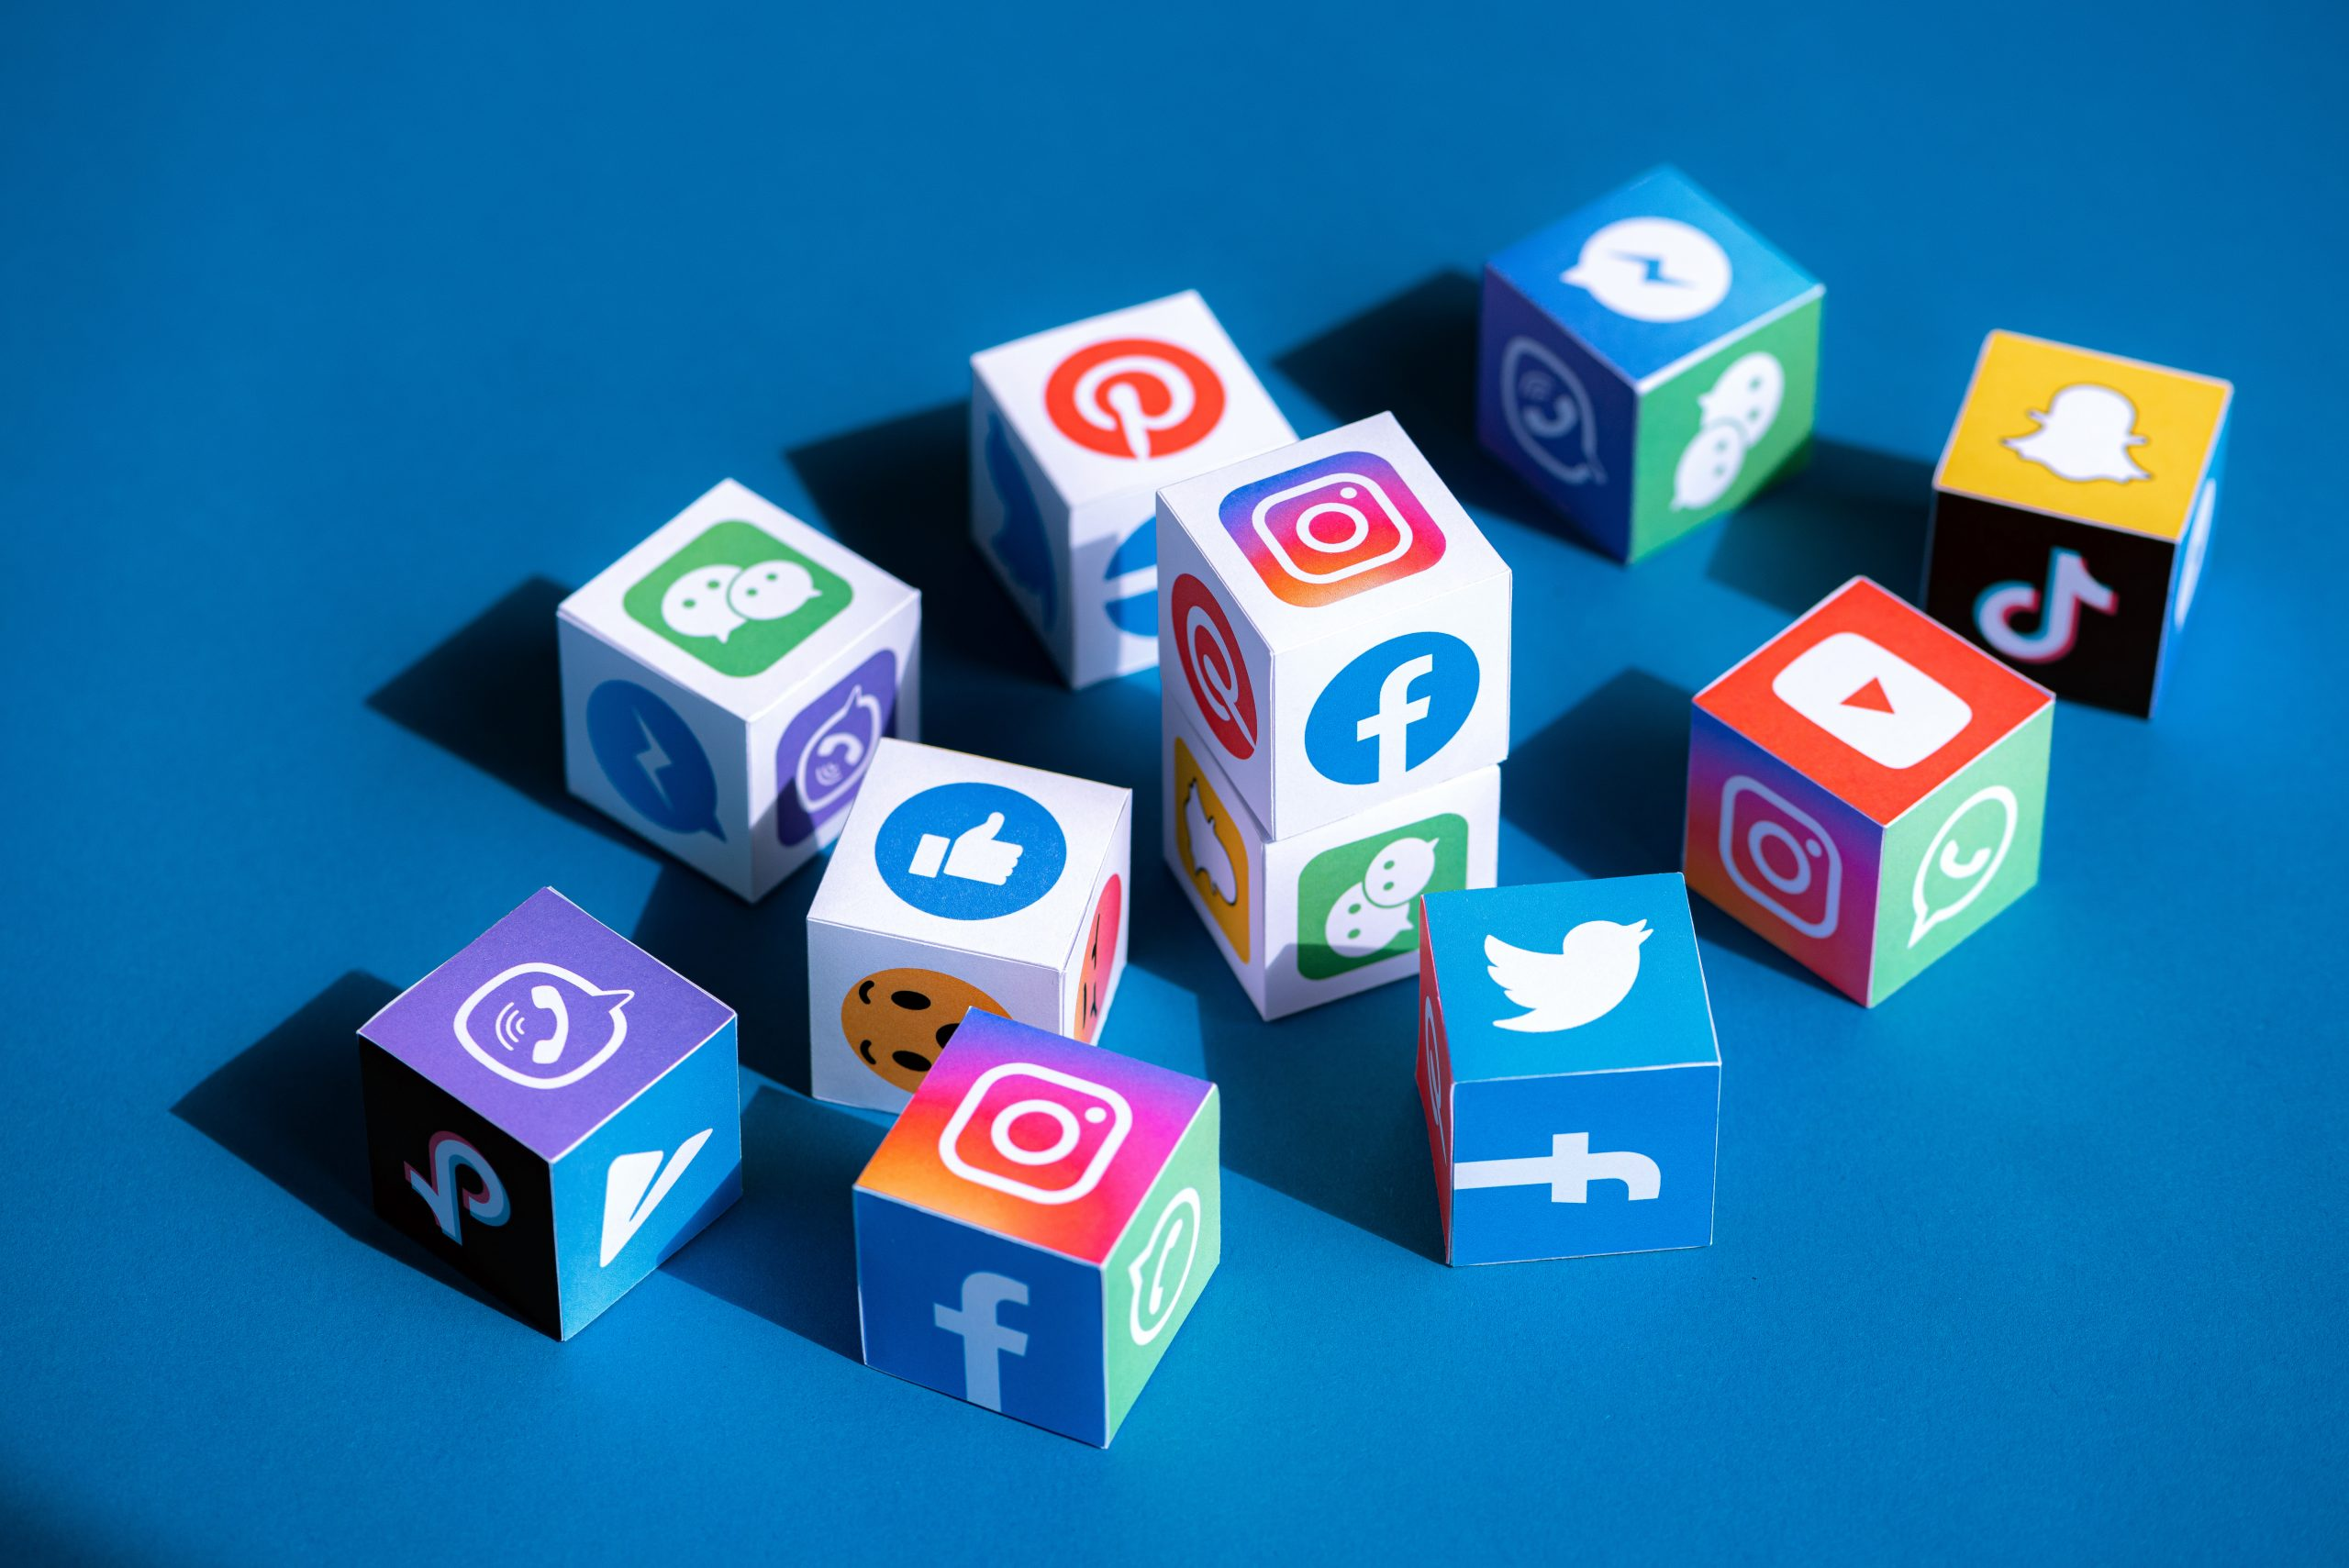 What Social Media Should Your Business Use?